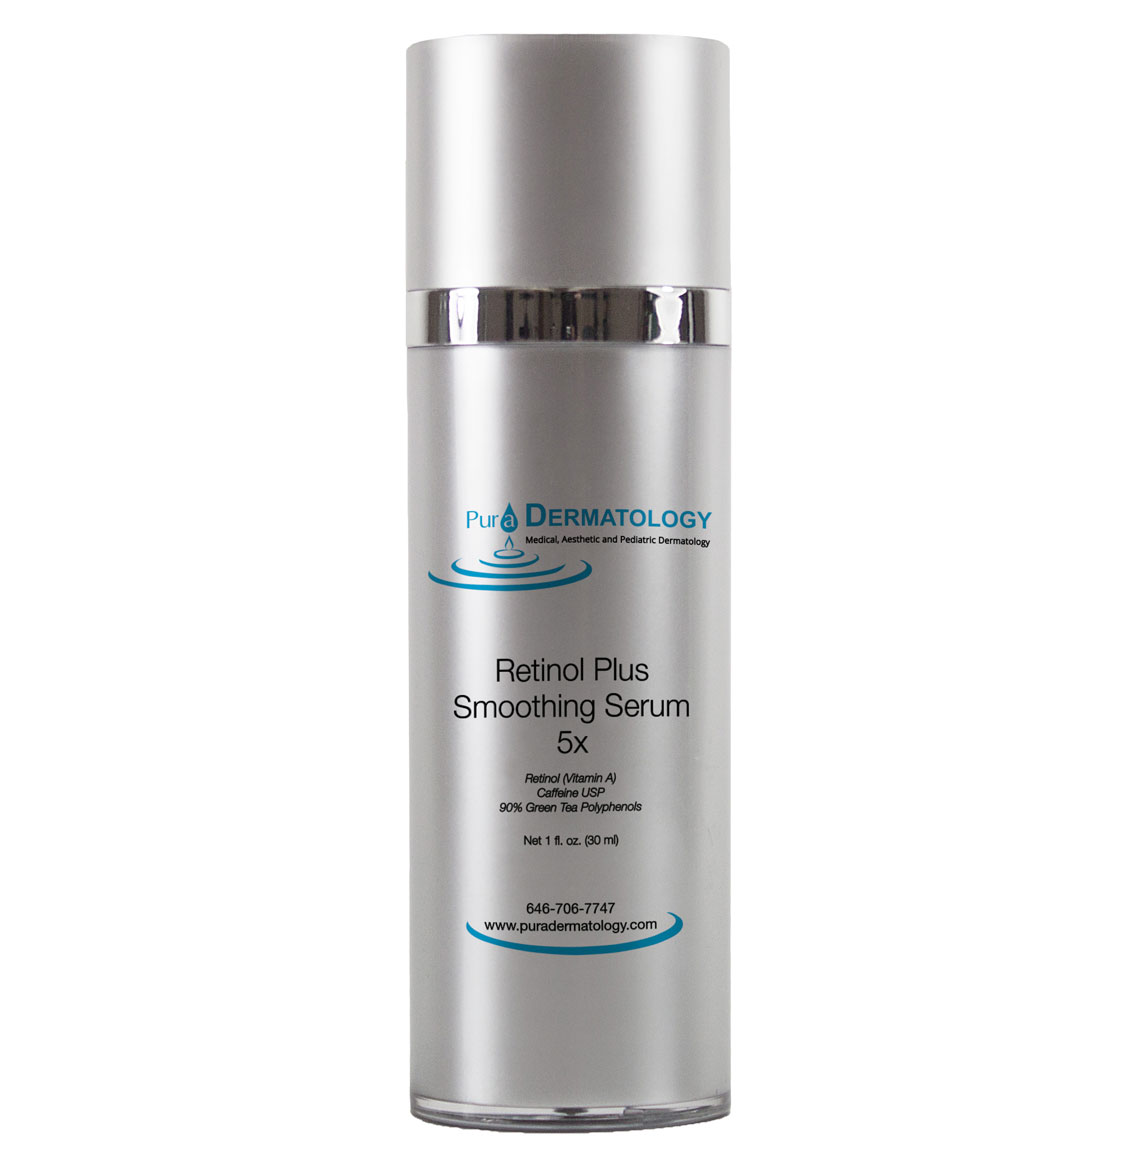 Retinol Plus Smoothing Serum